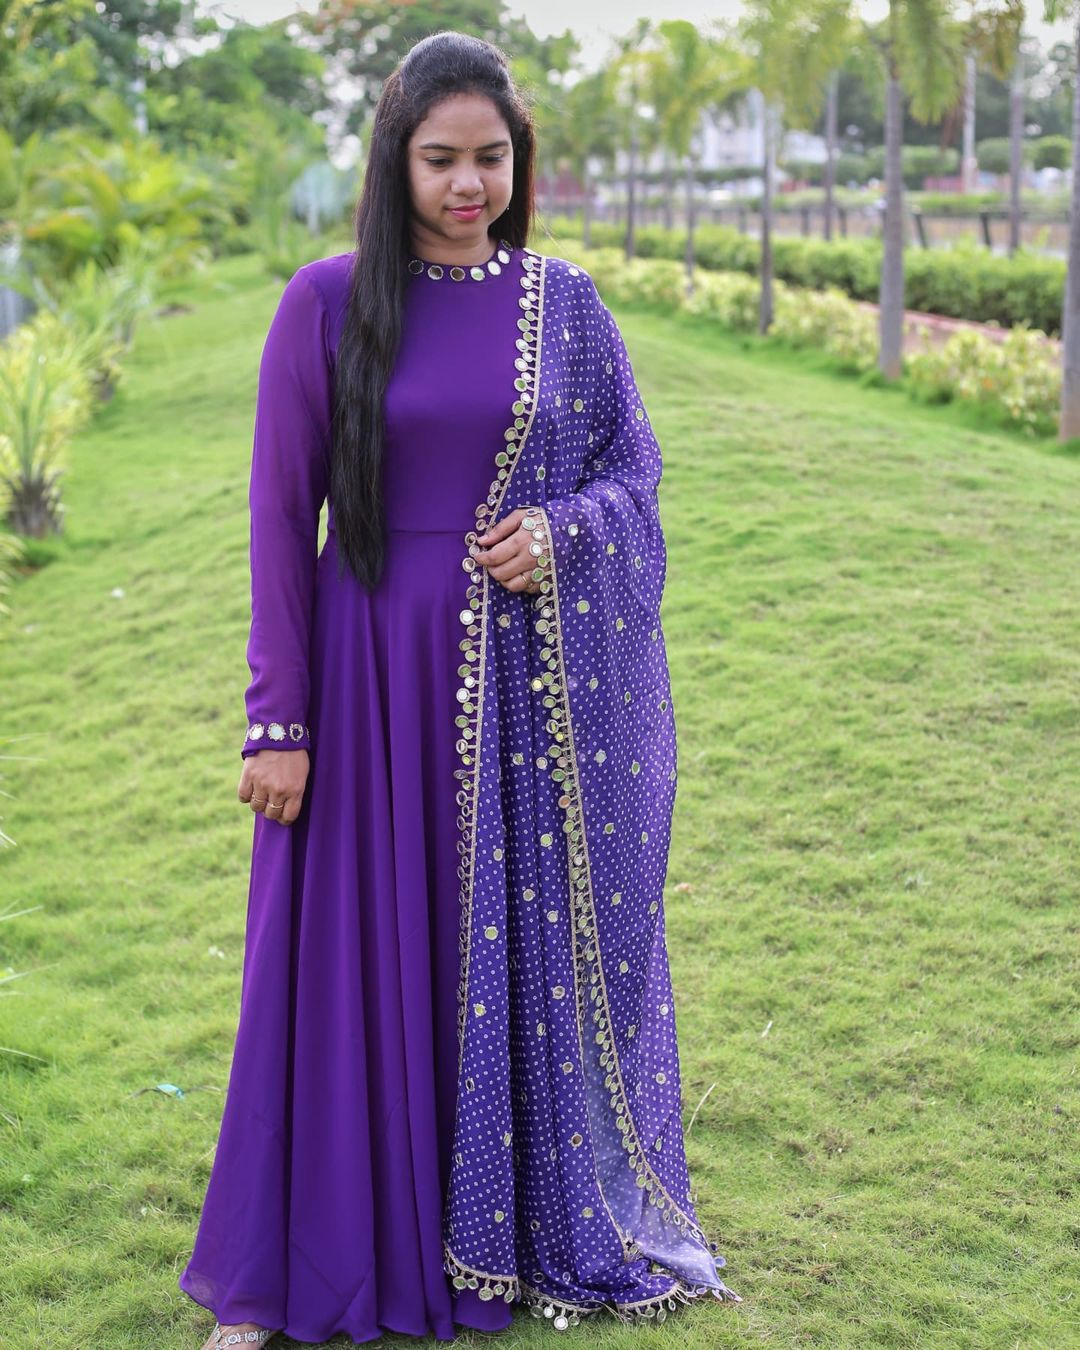 Purple high necked with mirror work neckline detailing longfrock paired beautiful bhandini dupatta with real mirrors work all over and along the length of the border . This is one stunning dupatta you wouldnt want to miss having in your wardrobe ! Price : RS. 4500/- 2021-07-24